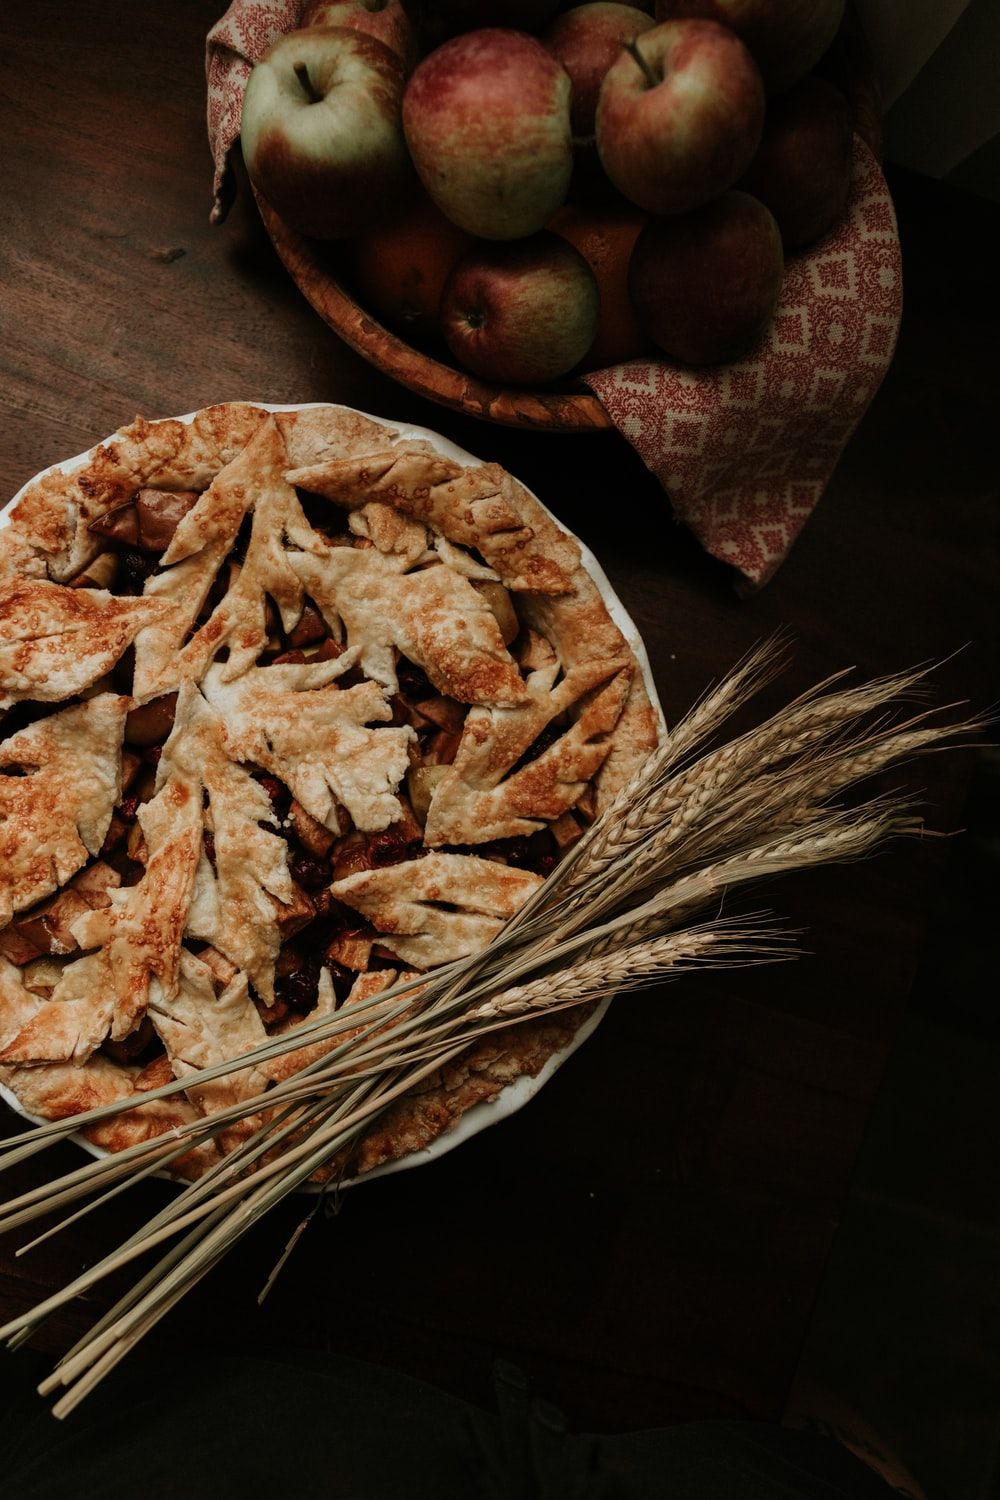 brown and white food on brown wooden table